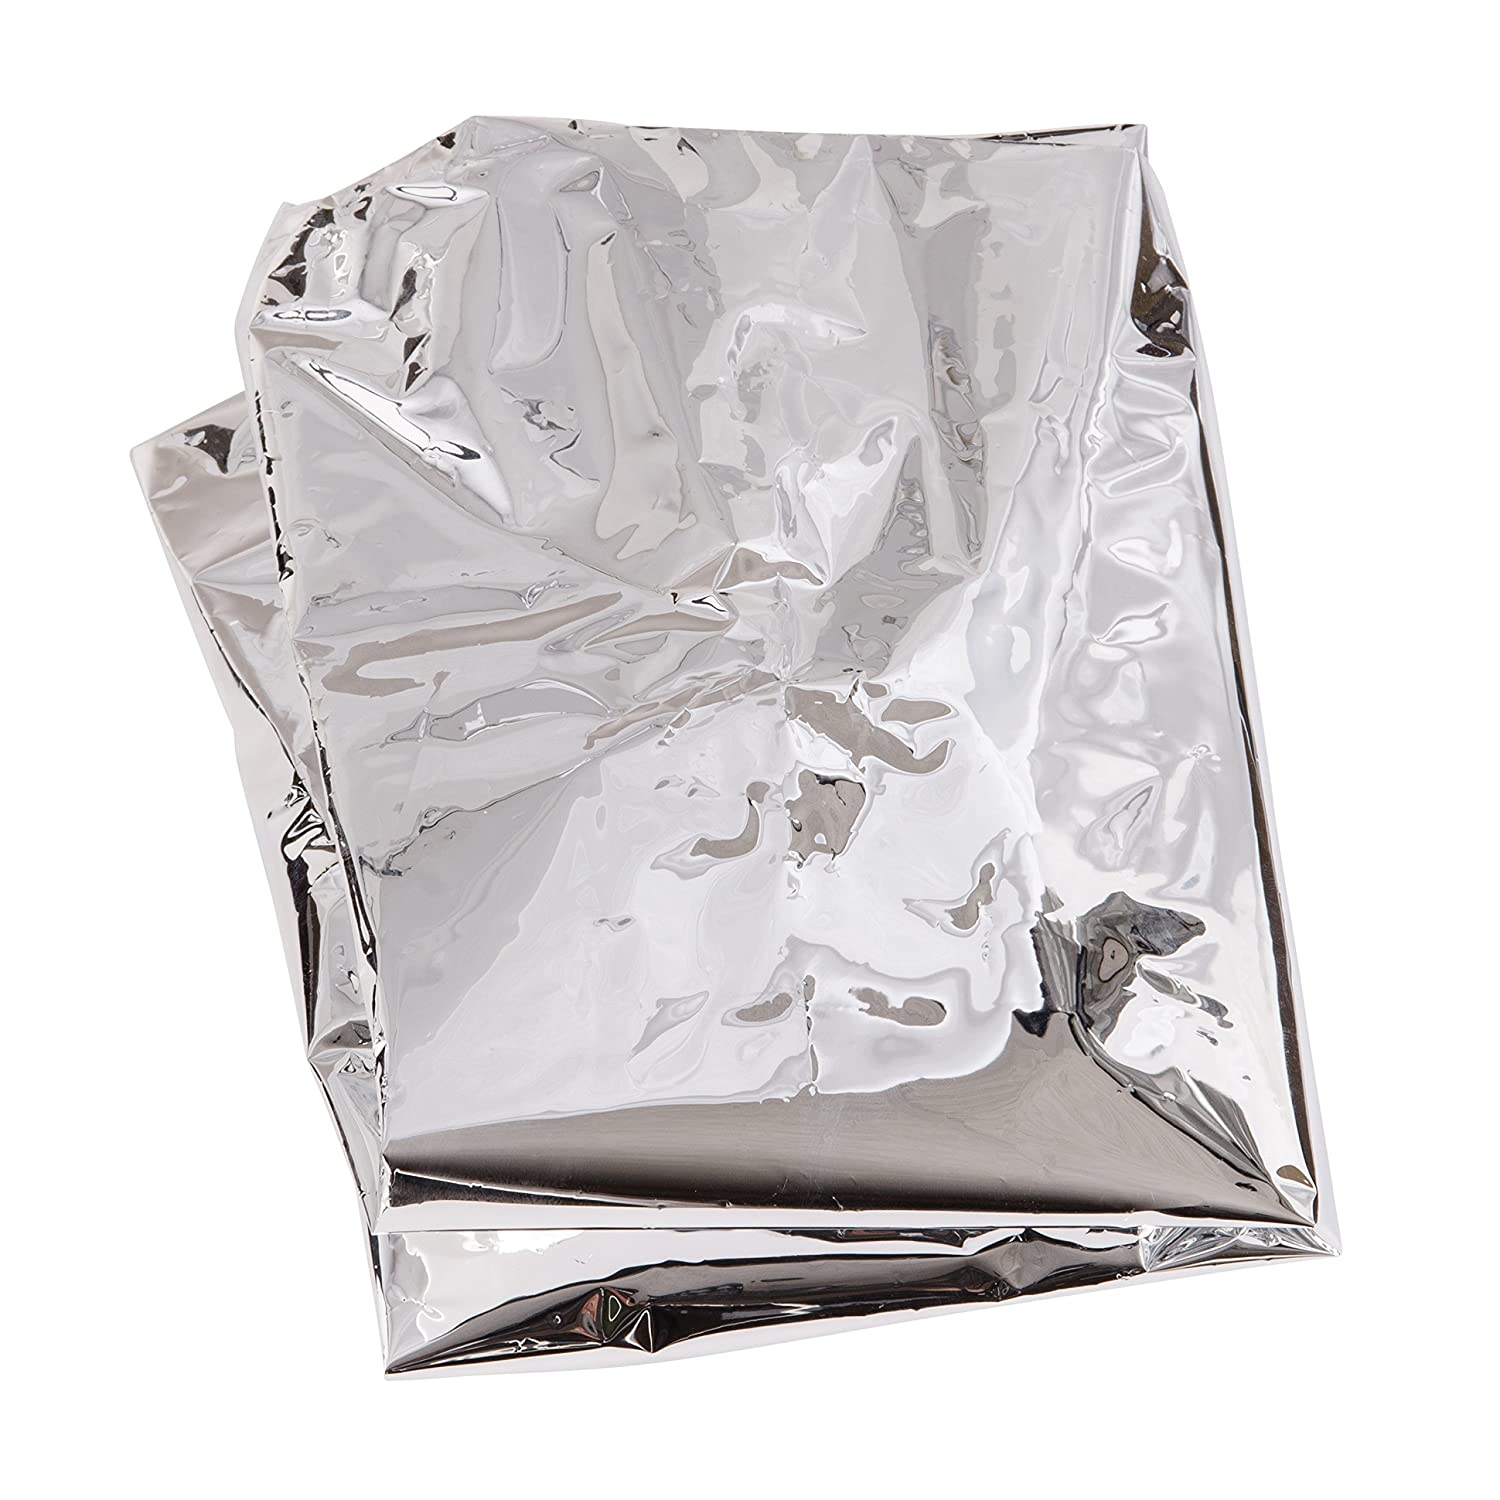 7259865f3bb4 Amazon.com  MABIS Sterile Foil Baby Bunting Emergency Heat ...